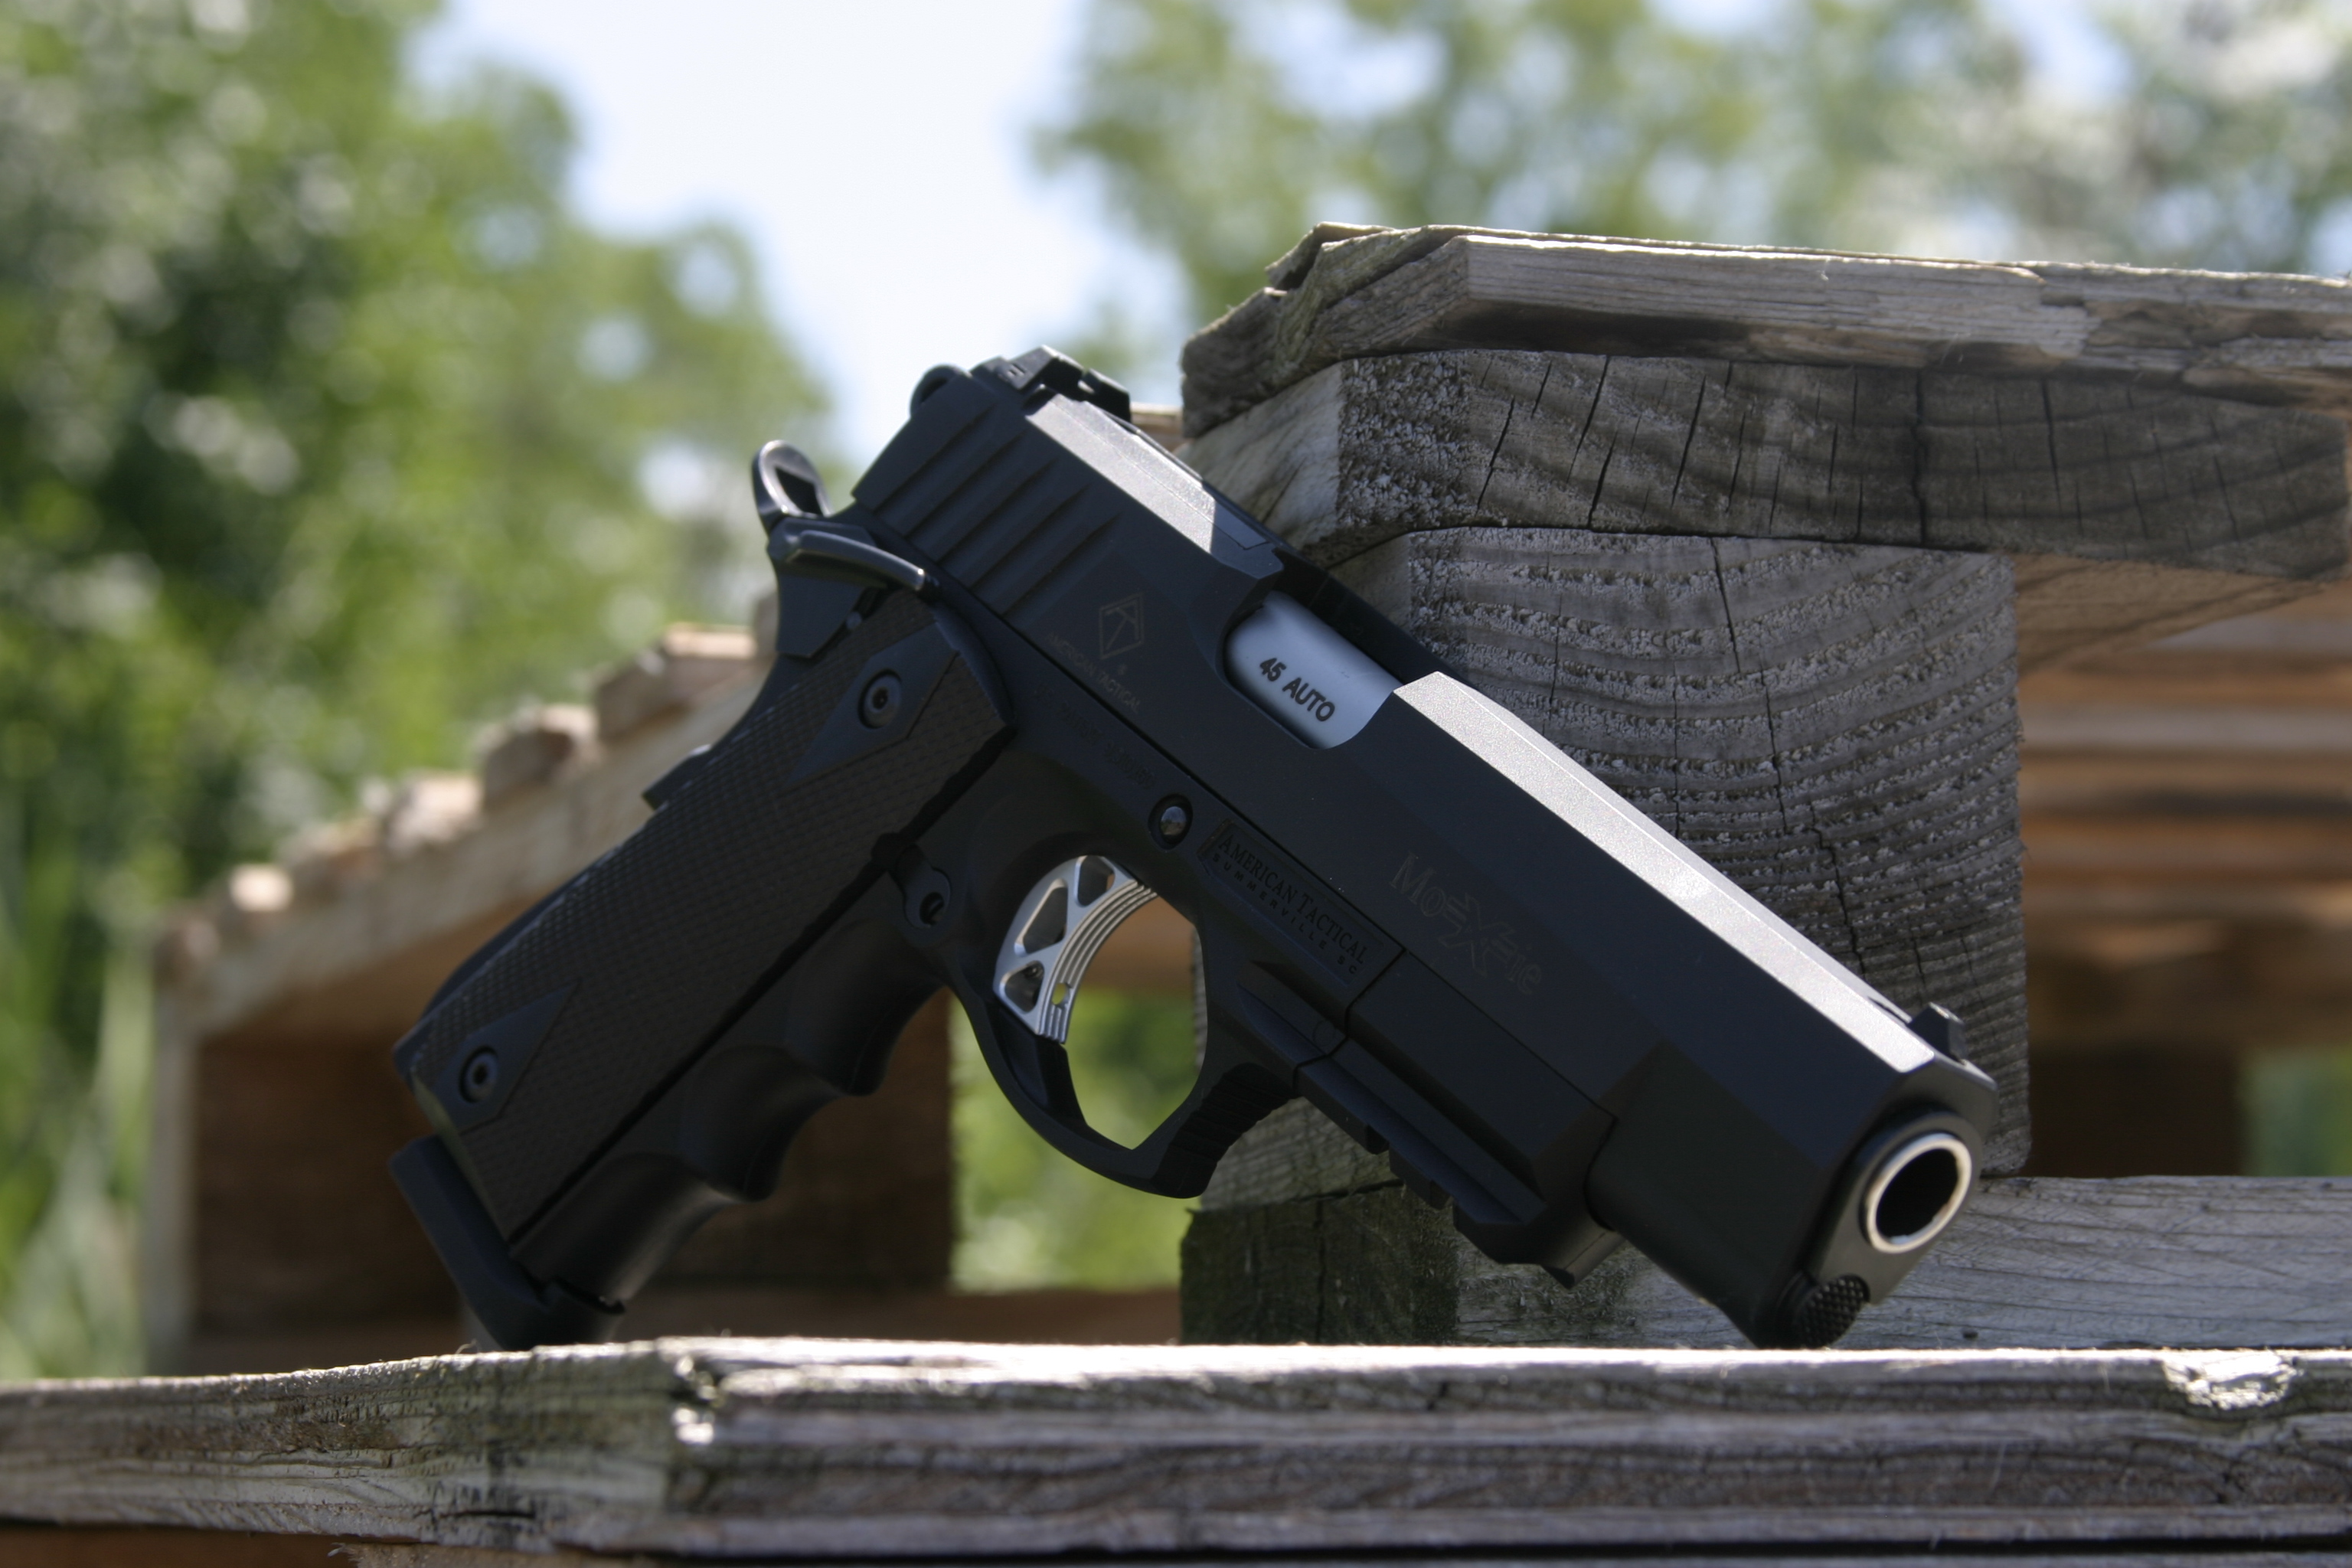 American Tactical Introduces New FXH-45M Moxie 1911